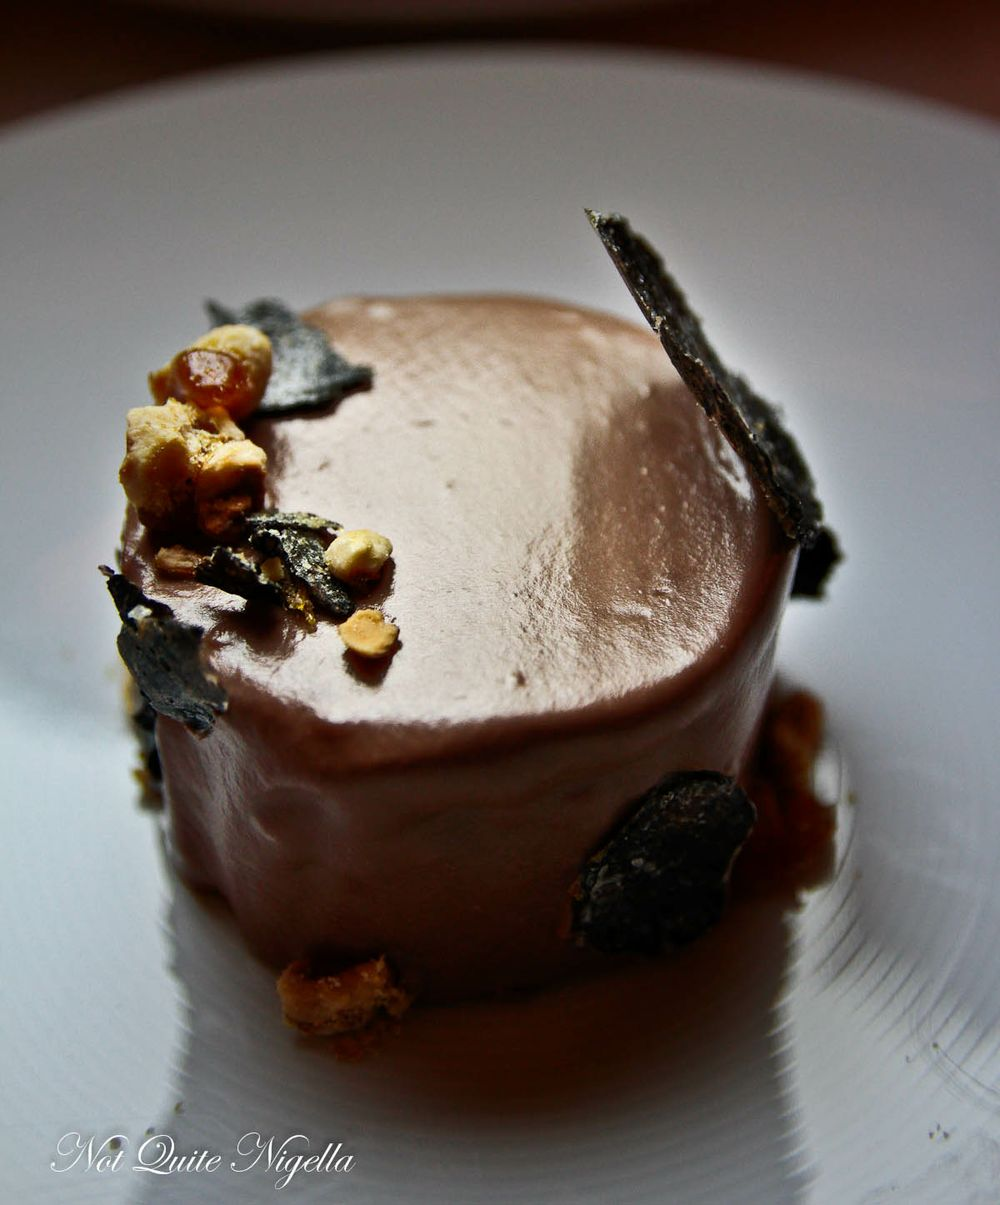 rockpool-on-george-truffle-12-2